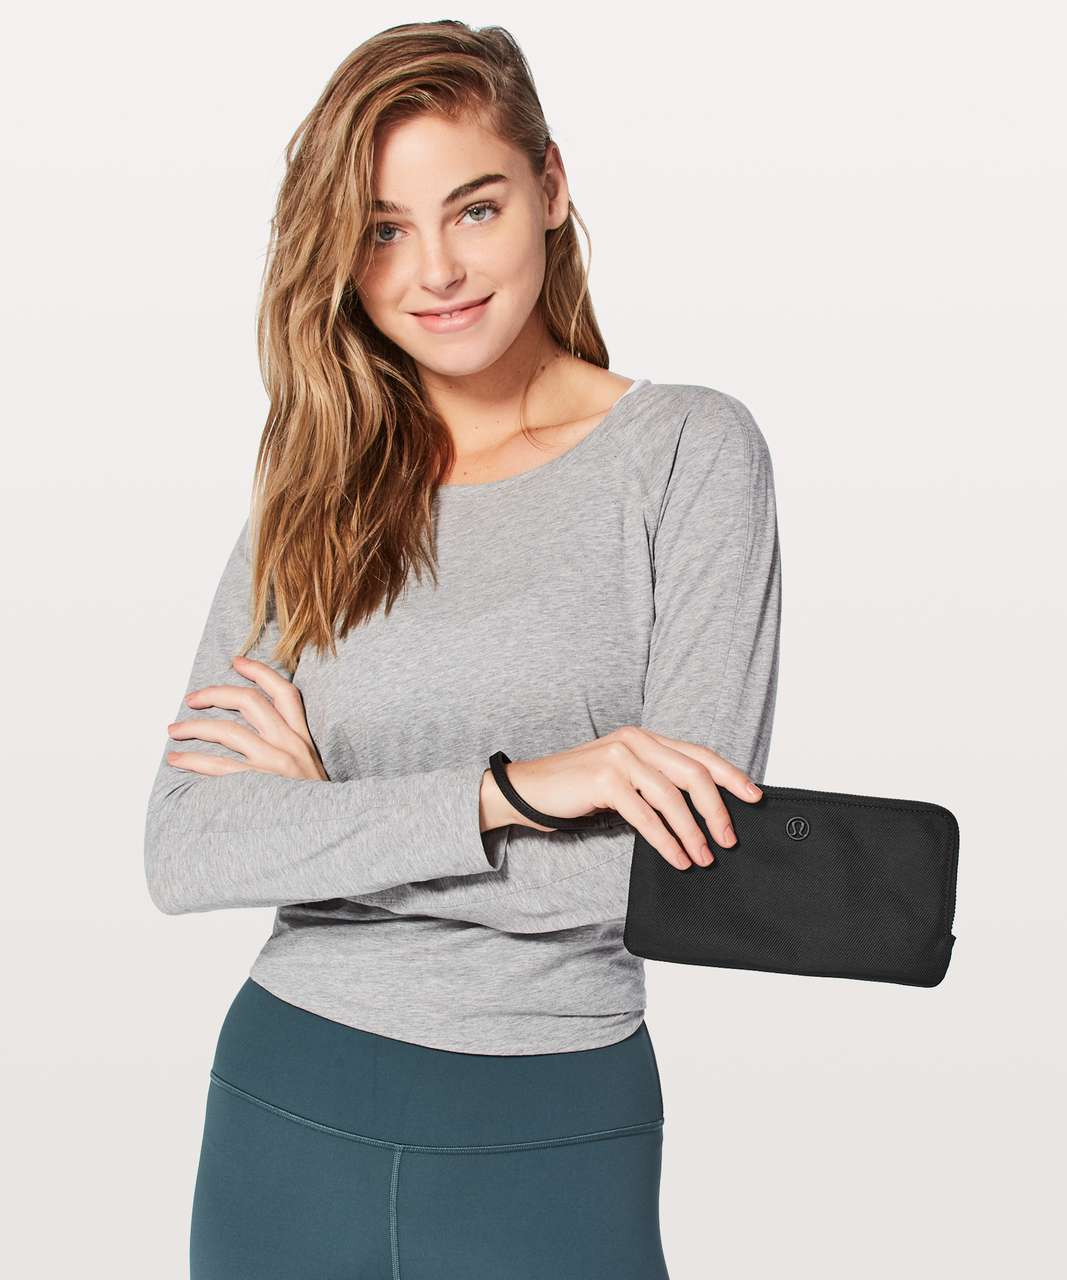 Lululemon Double Up Pouch - Black (First Release)